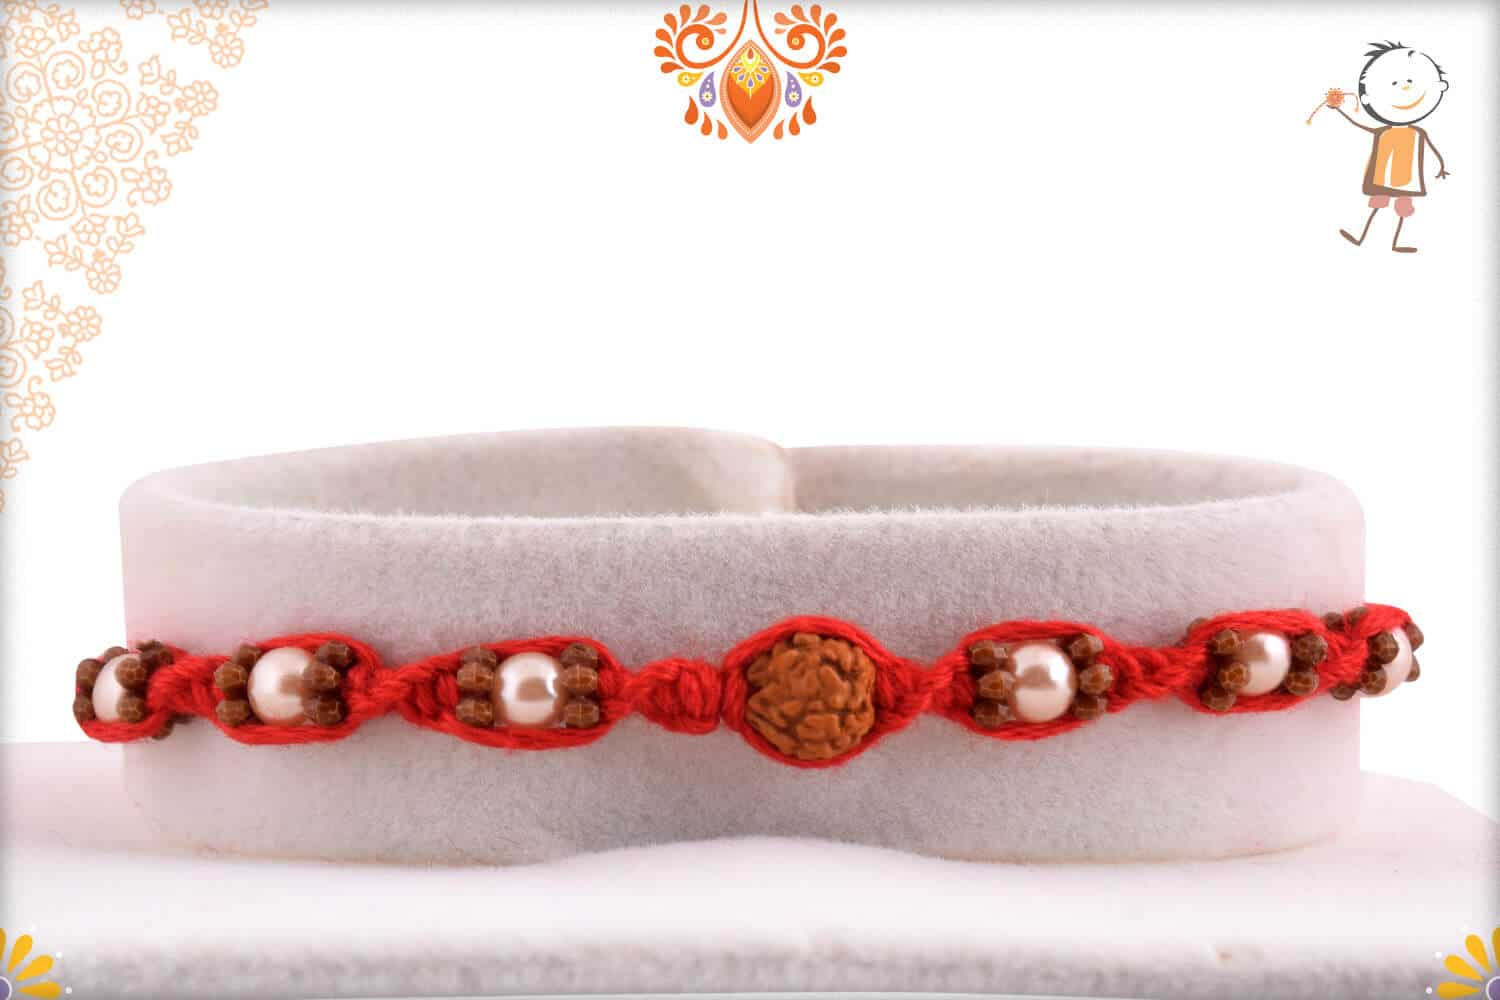 Uniquely Knotted Rudraksh Rakhi with Pearls | Send Rakhi Gifts Online 1